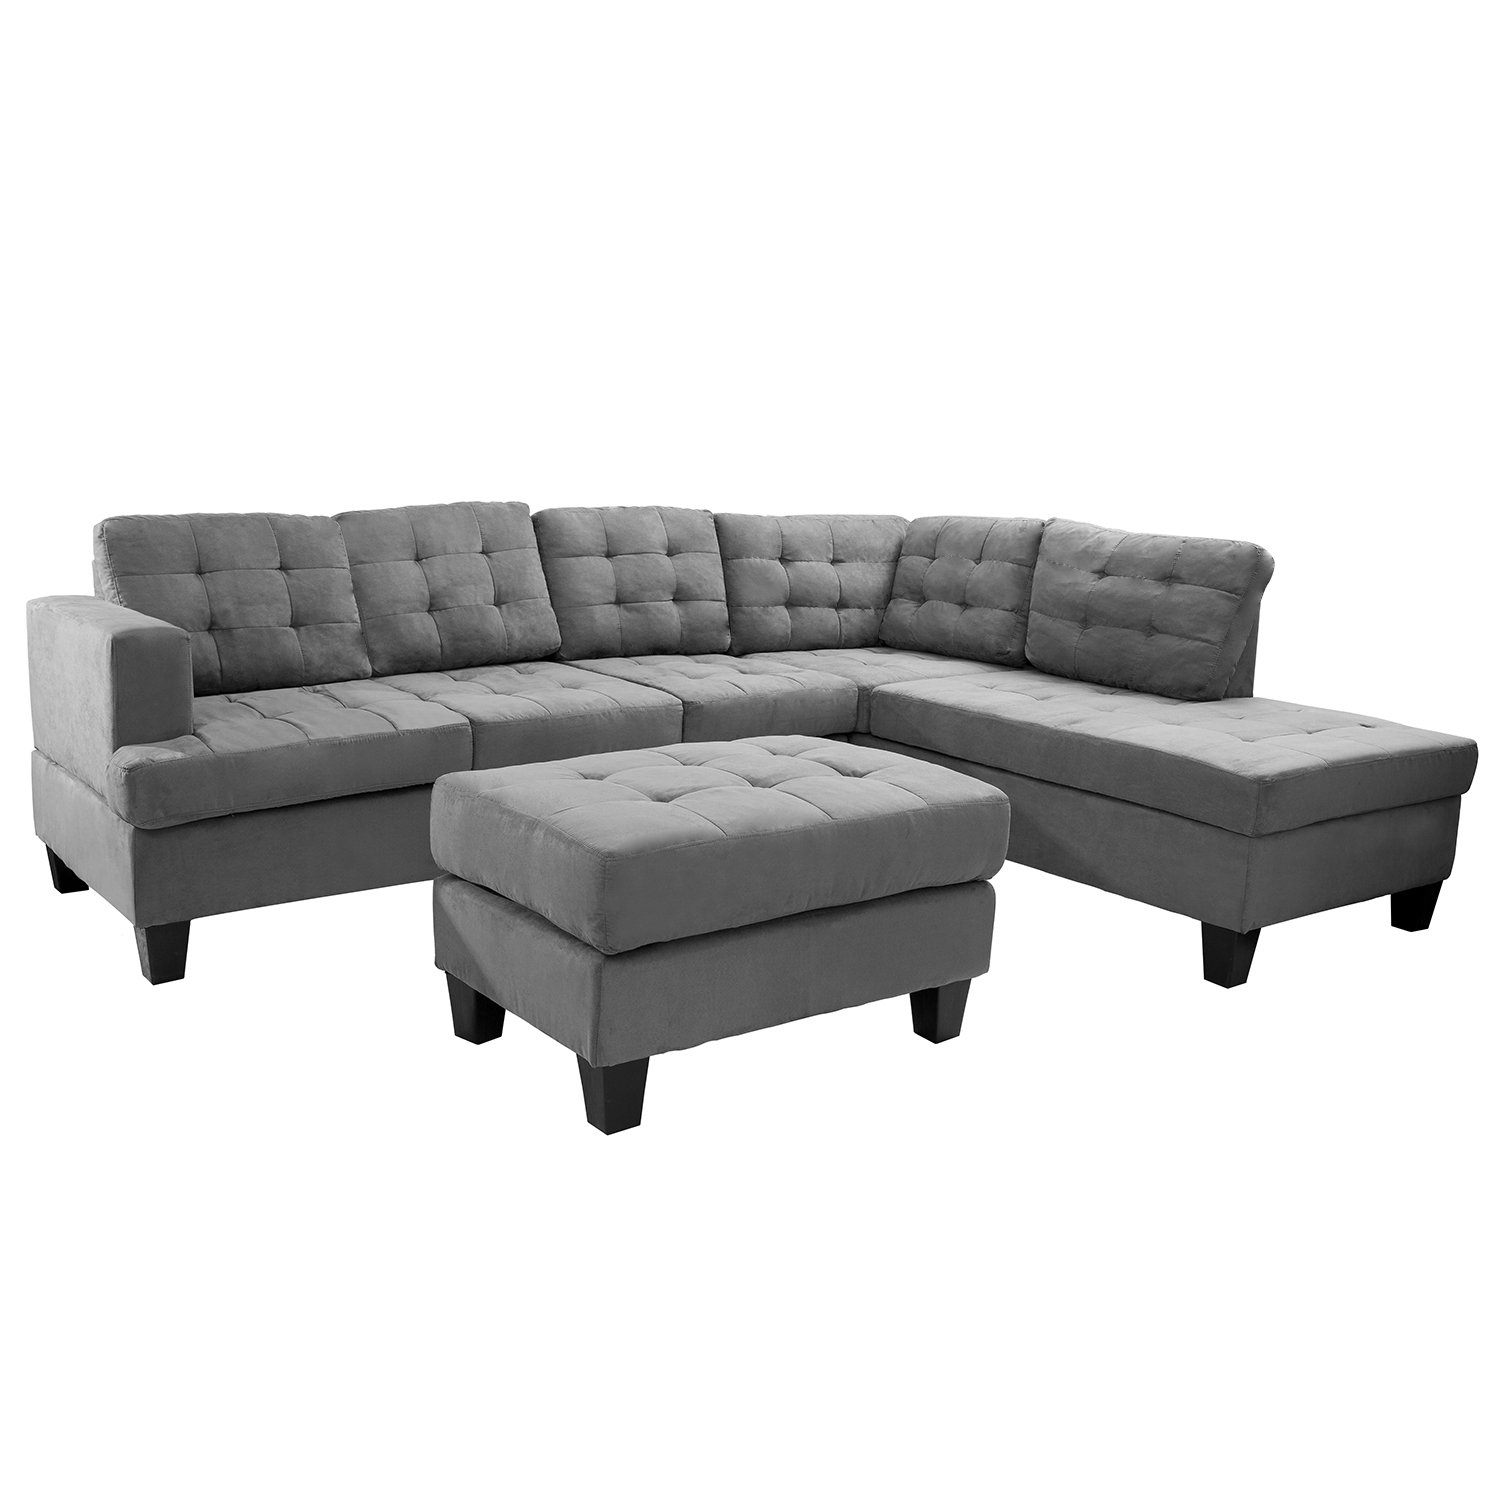 Amazon Merax 3 piece Reversible Sectional Sofa with Chaise